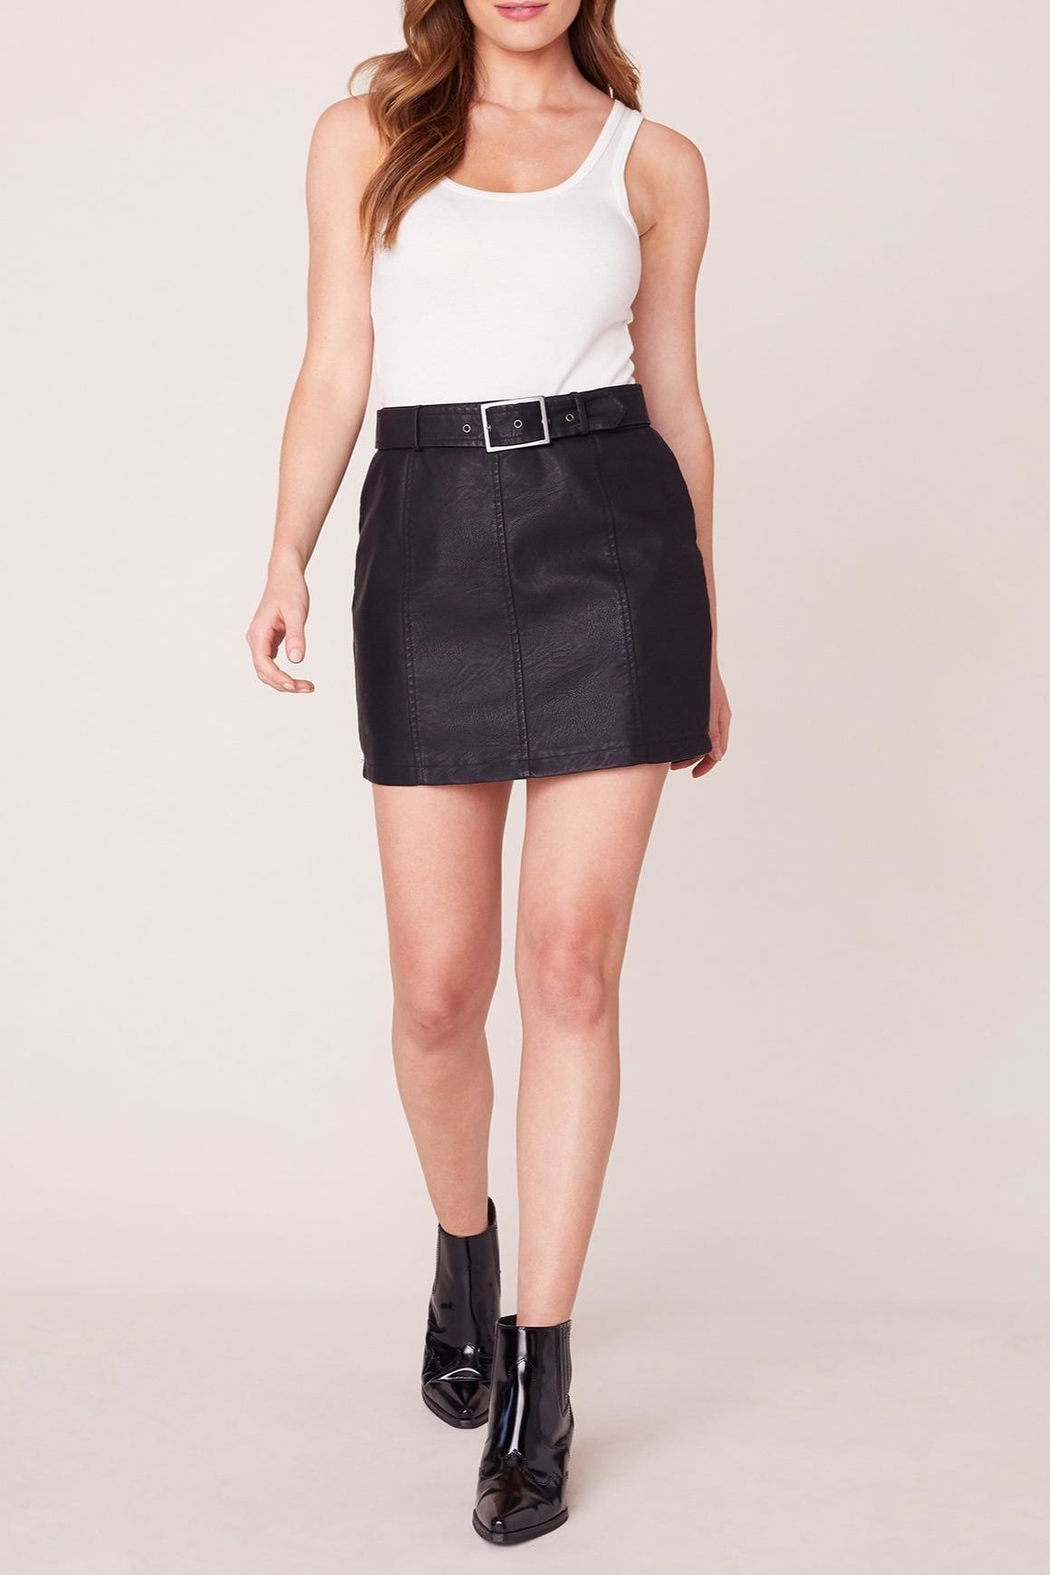 Jack by BB Dakota So-Edgy Vegan-Leather Skirt - Front Cropped Image